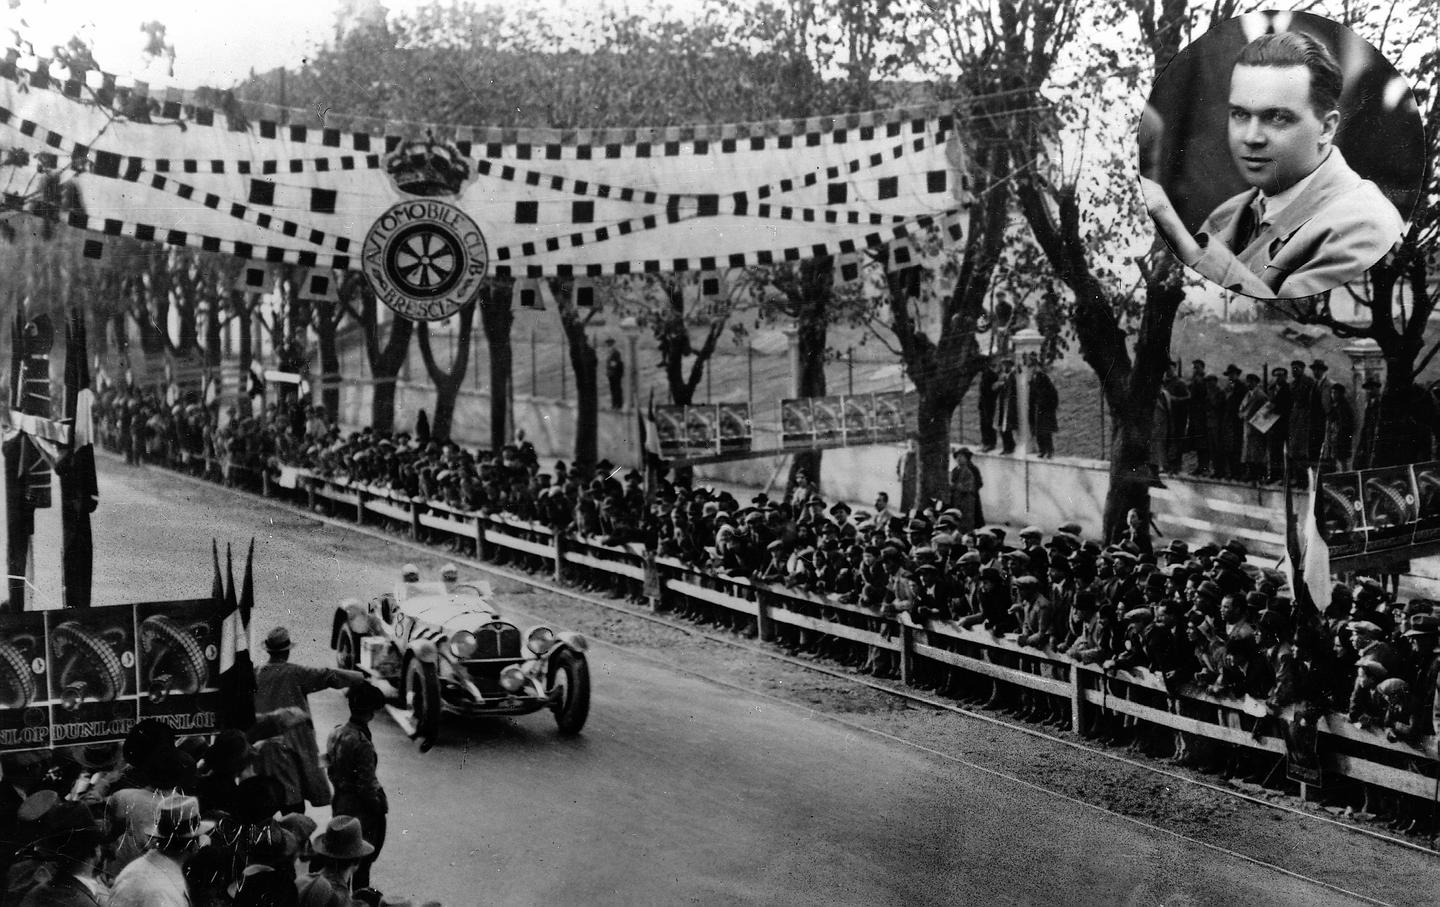 ´Rudolf Caracciola crosses the finish line in the 1931 Mille Miglia´, the 1,000-mile race starting in Brescia on April 12, 1931 and finishing in Brescia on April 13, 1931. It is the first time that a foreigner had won the famous Italian race.